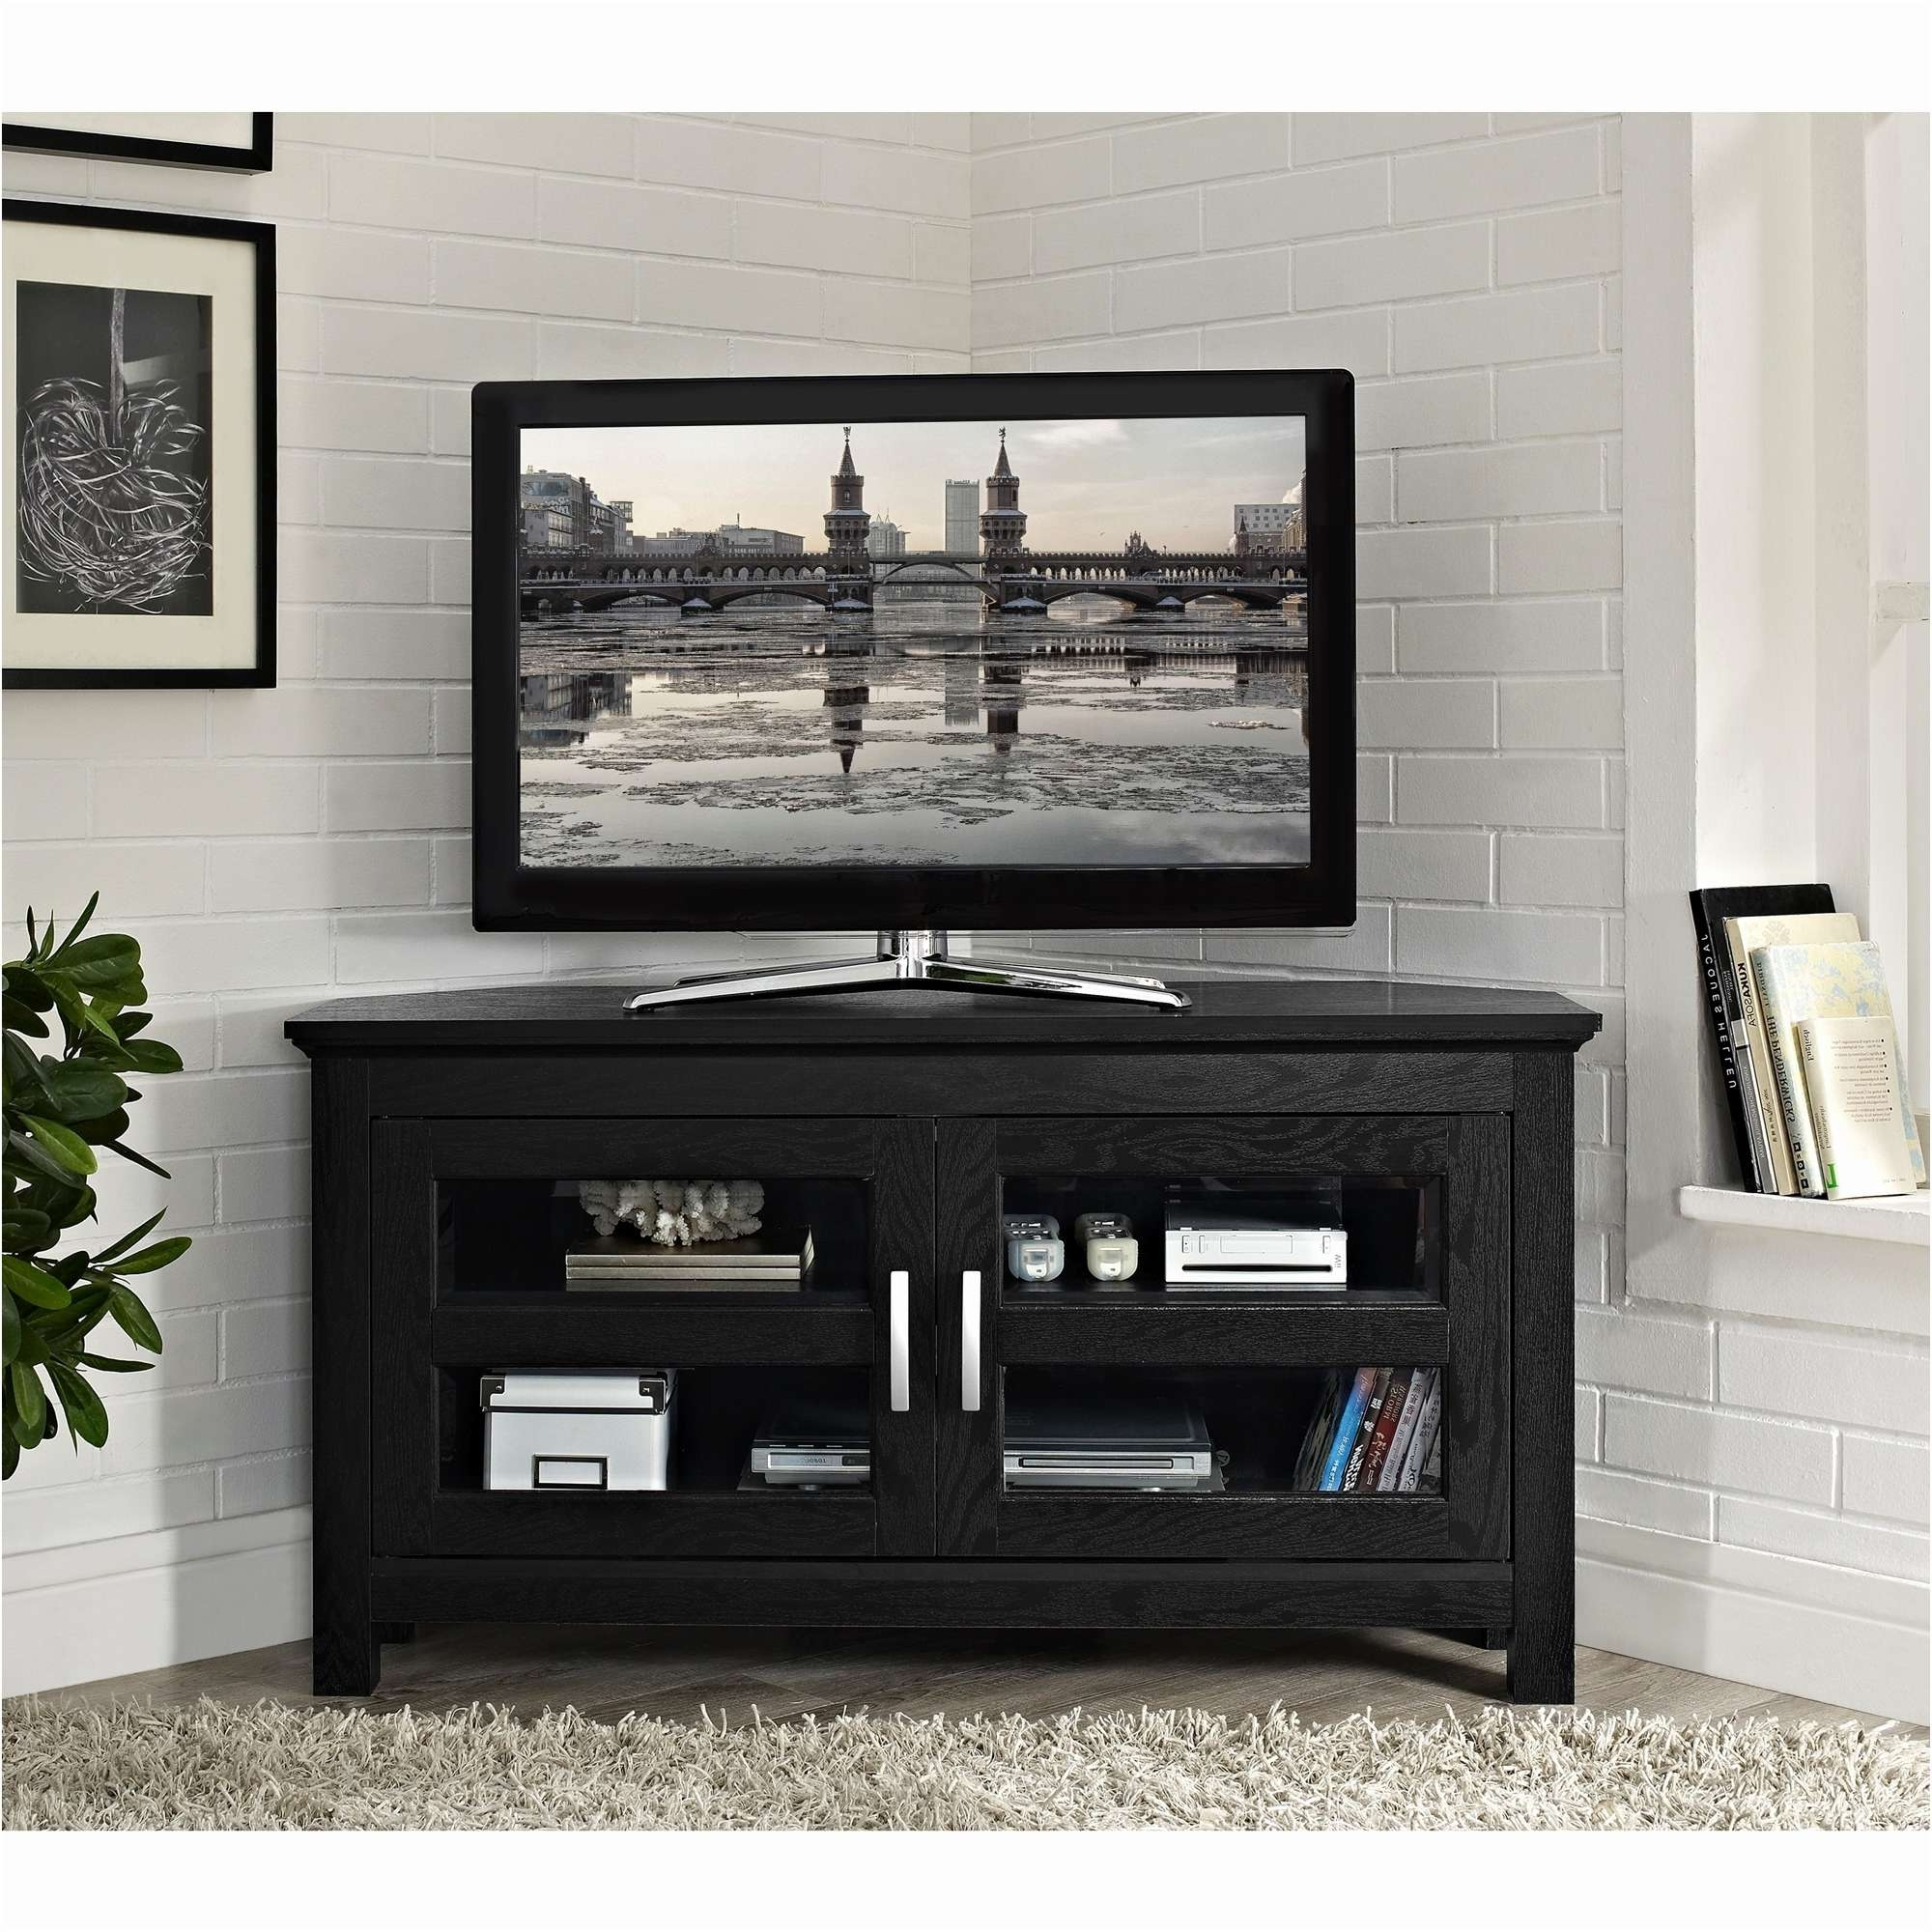 Living Room Tv Stands Luxury Floating Tv Stand Living Room With Luxury Tv Stands (View 5 of 15)